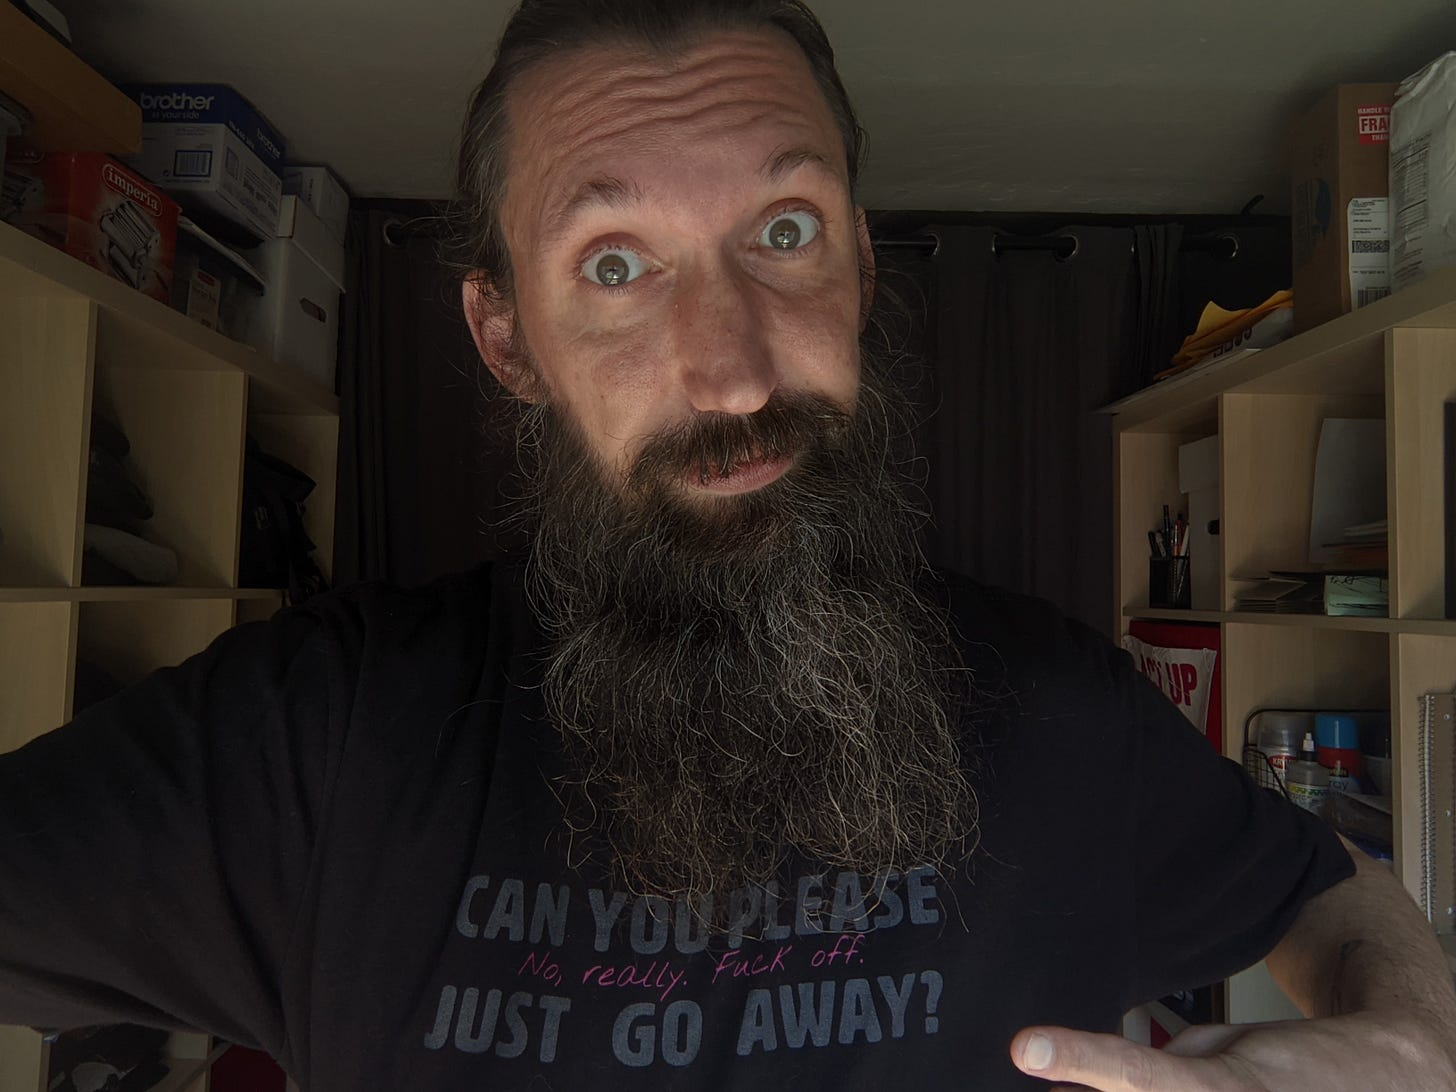 """A selfie of Jason wearing a black t-shirt with the words, """"Can you please just go away? No, really. Fuck off,"""" written on it. They are against a backdrop of bookshelves filled with art supplies. The expression on Jason's face fits the saying."""